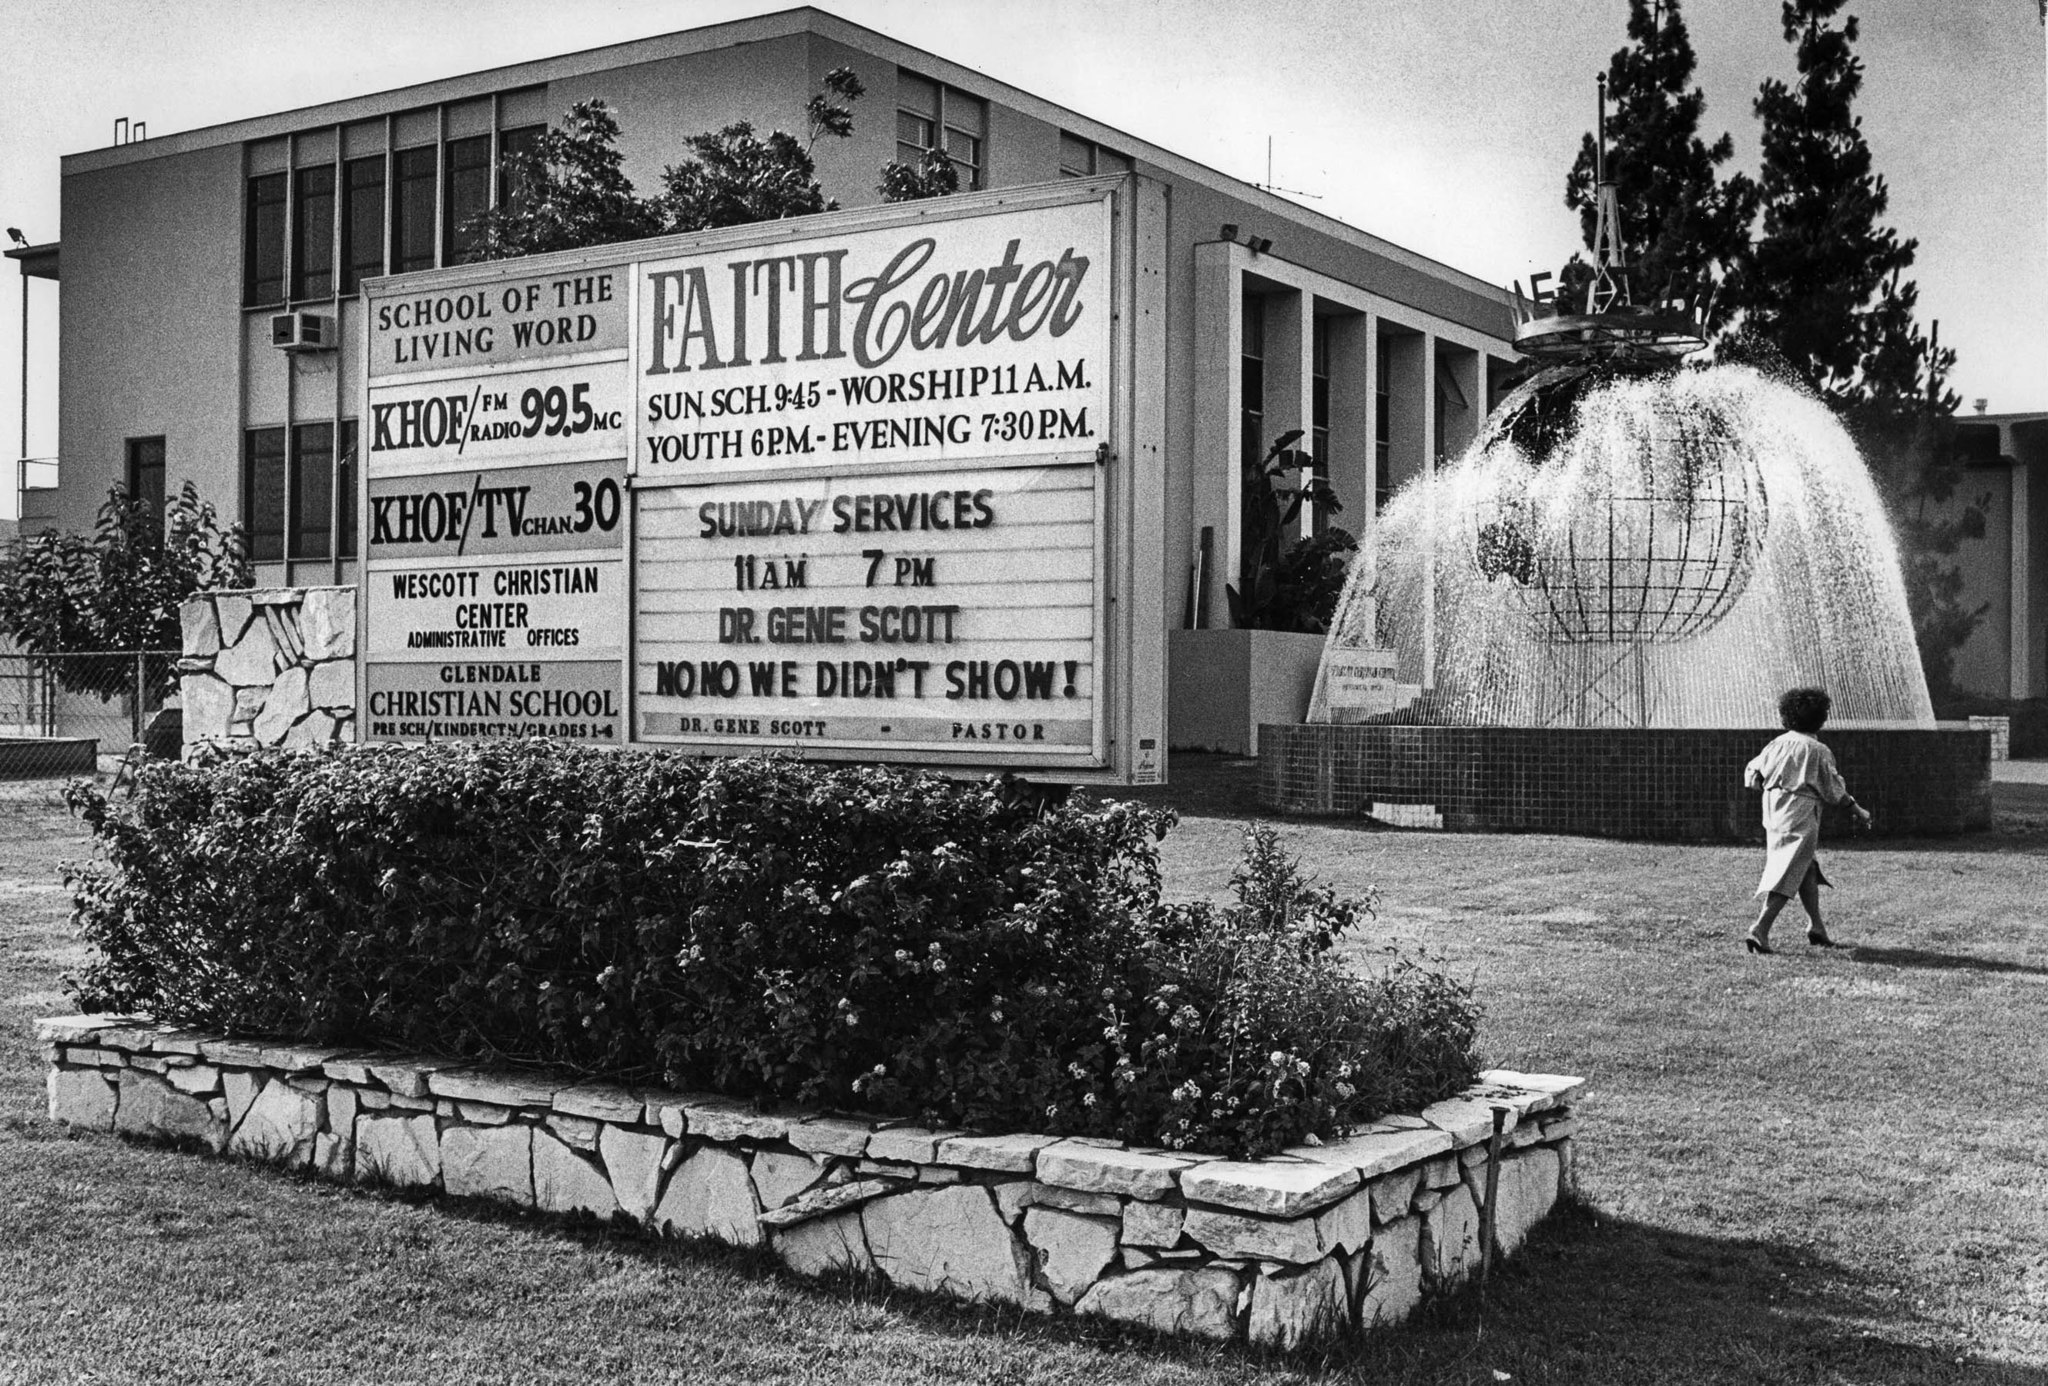 July 13, 1980: The exterior of Gene Scott's Faith Center church complex in Glendale. This phot